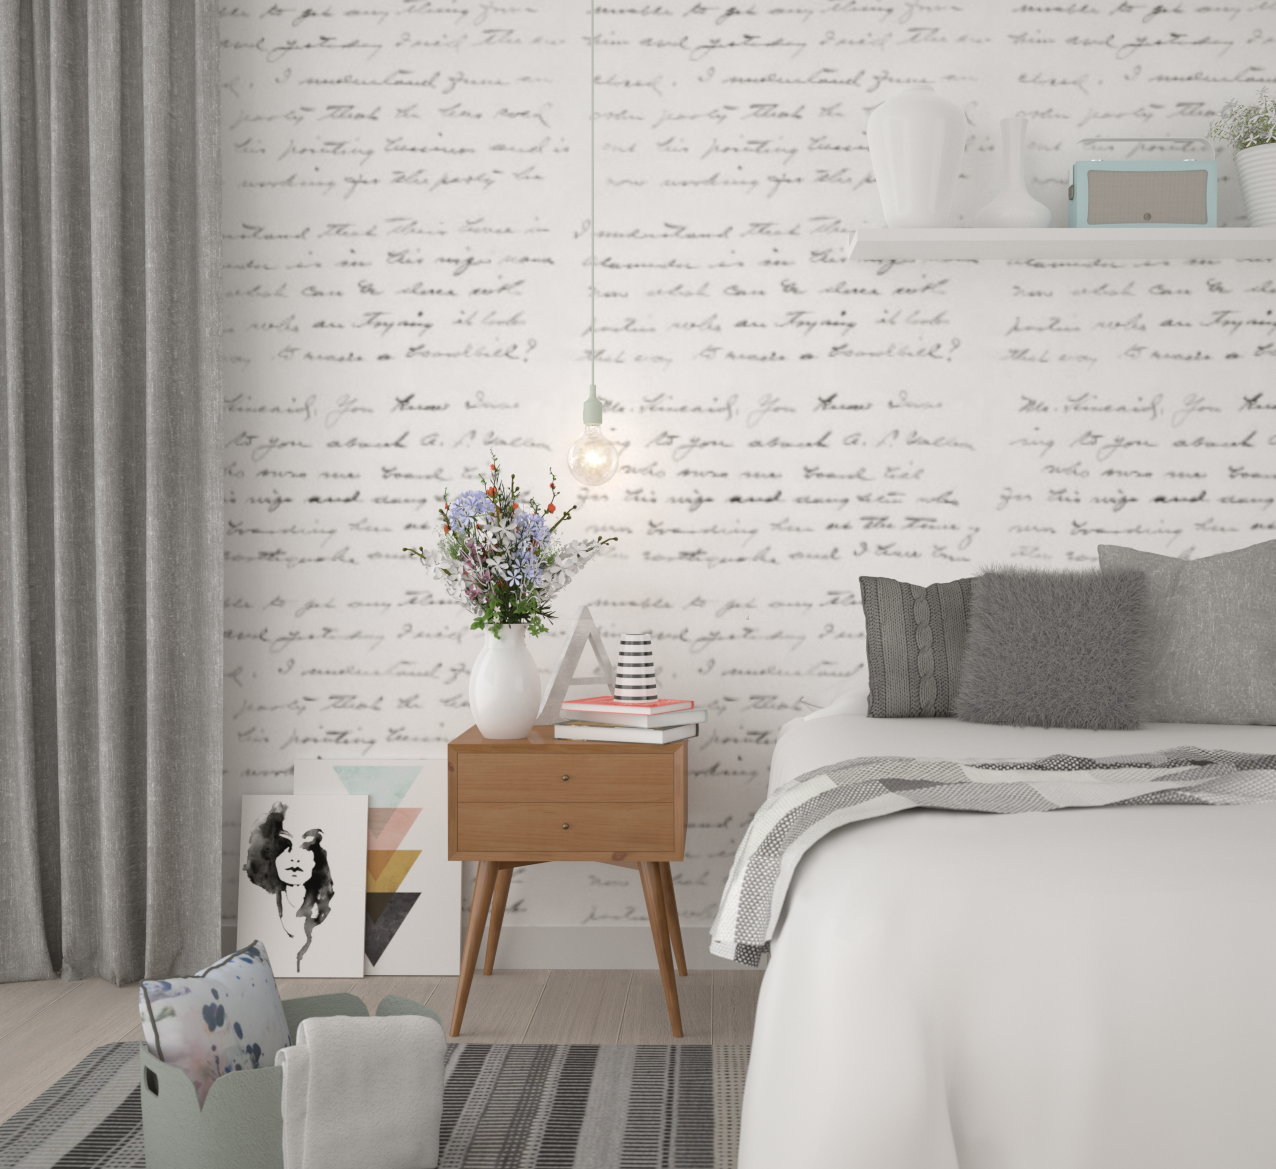 How to create an awesome vignette anita brown 3d Scandinavian wallpaper and decor